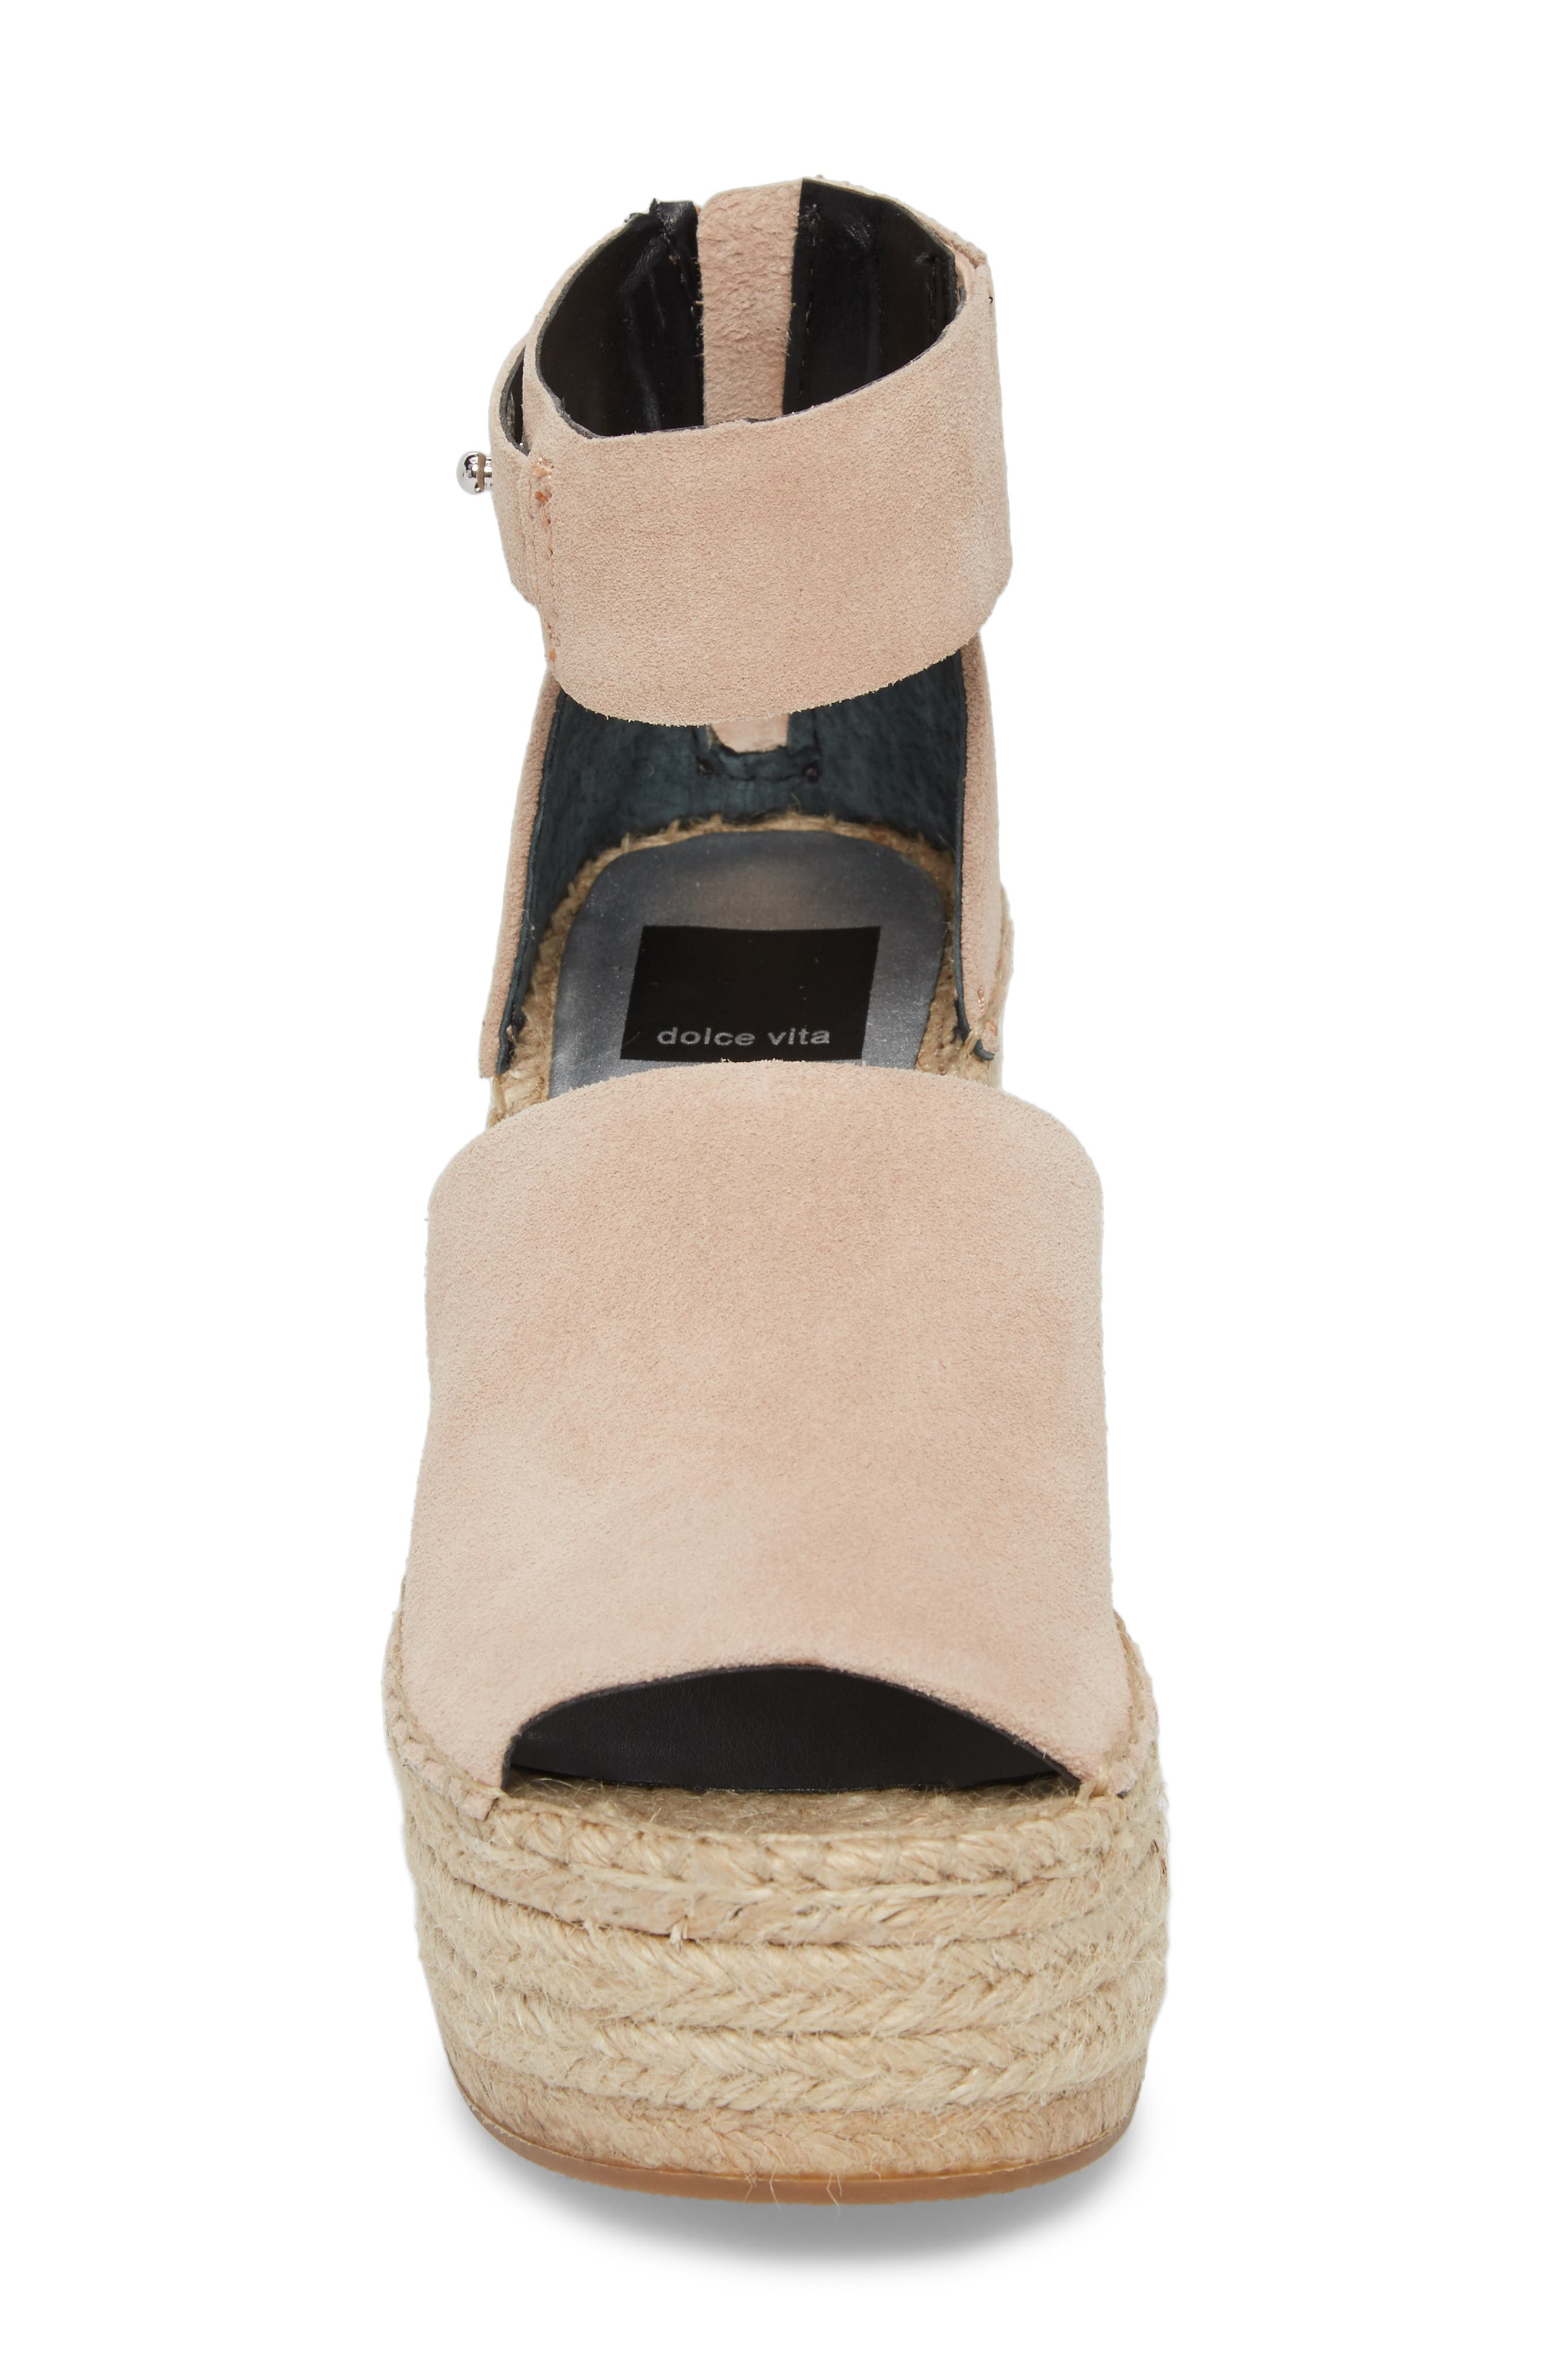 DOLCE VITA, Straw Wedge Espadrille Sandal, Alternate thumbnail 4, color, BLUSH